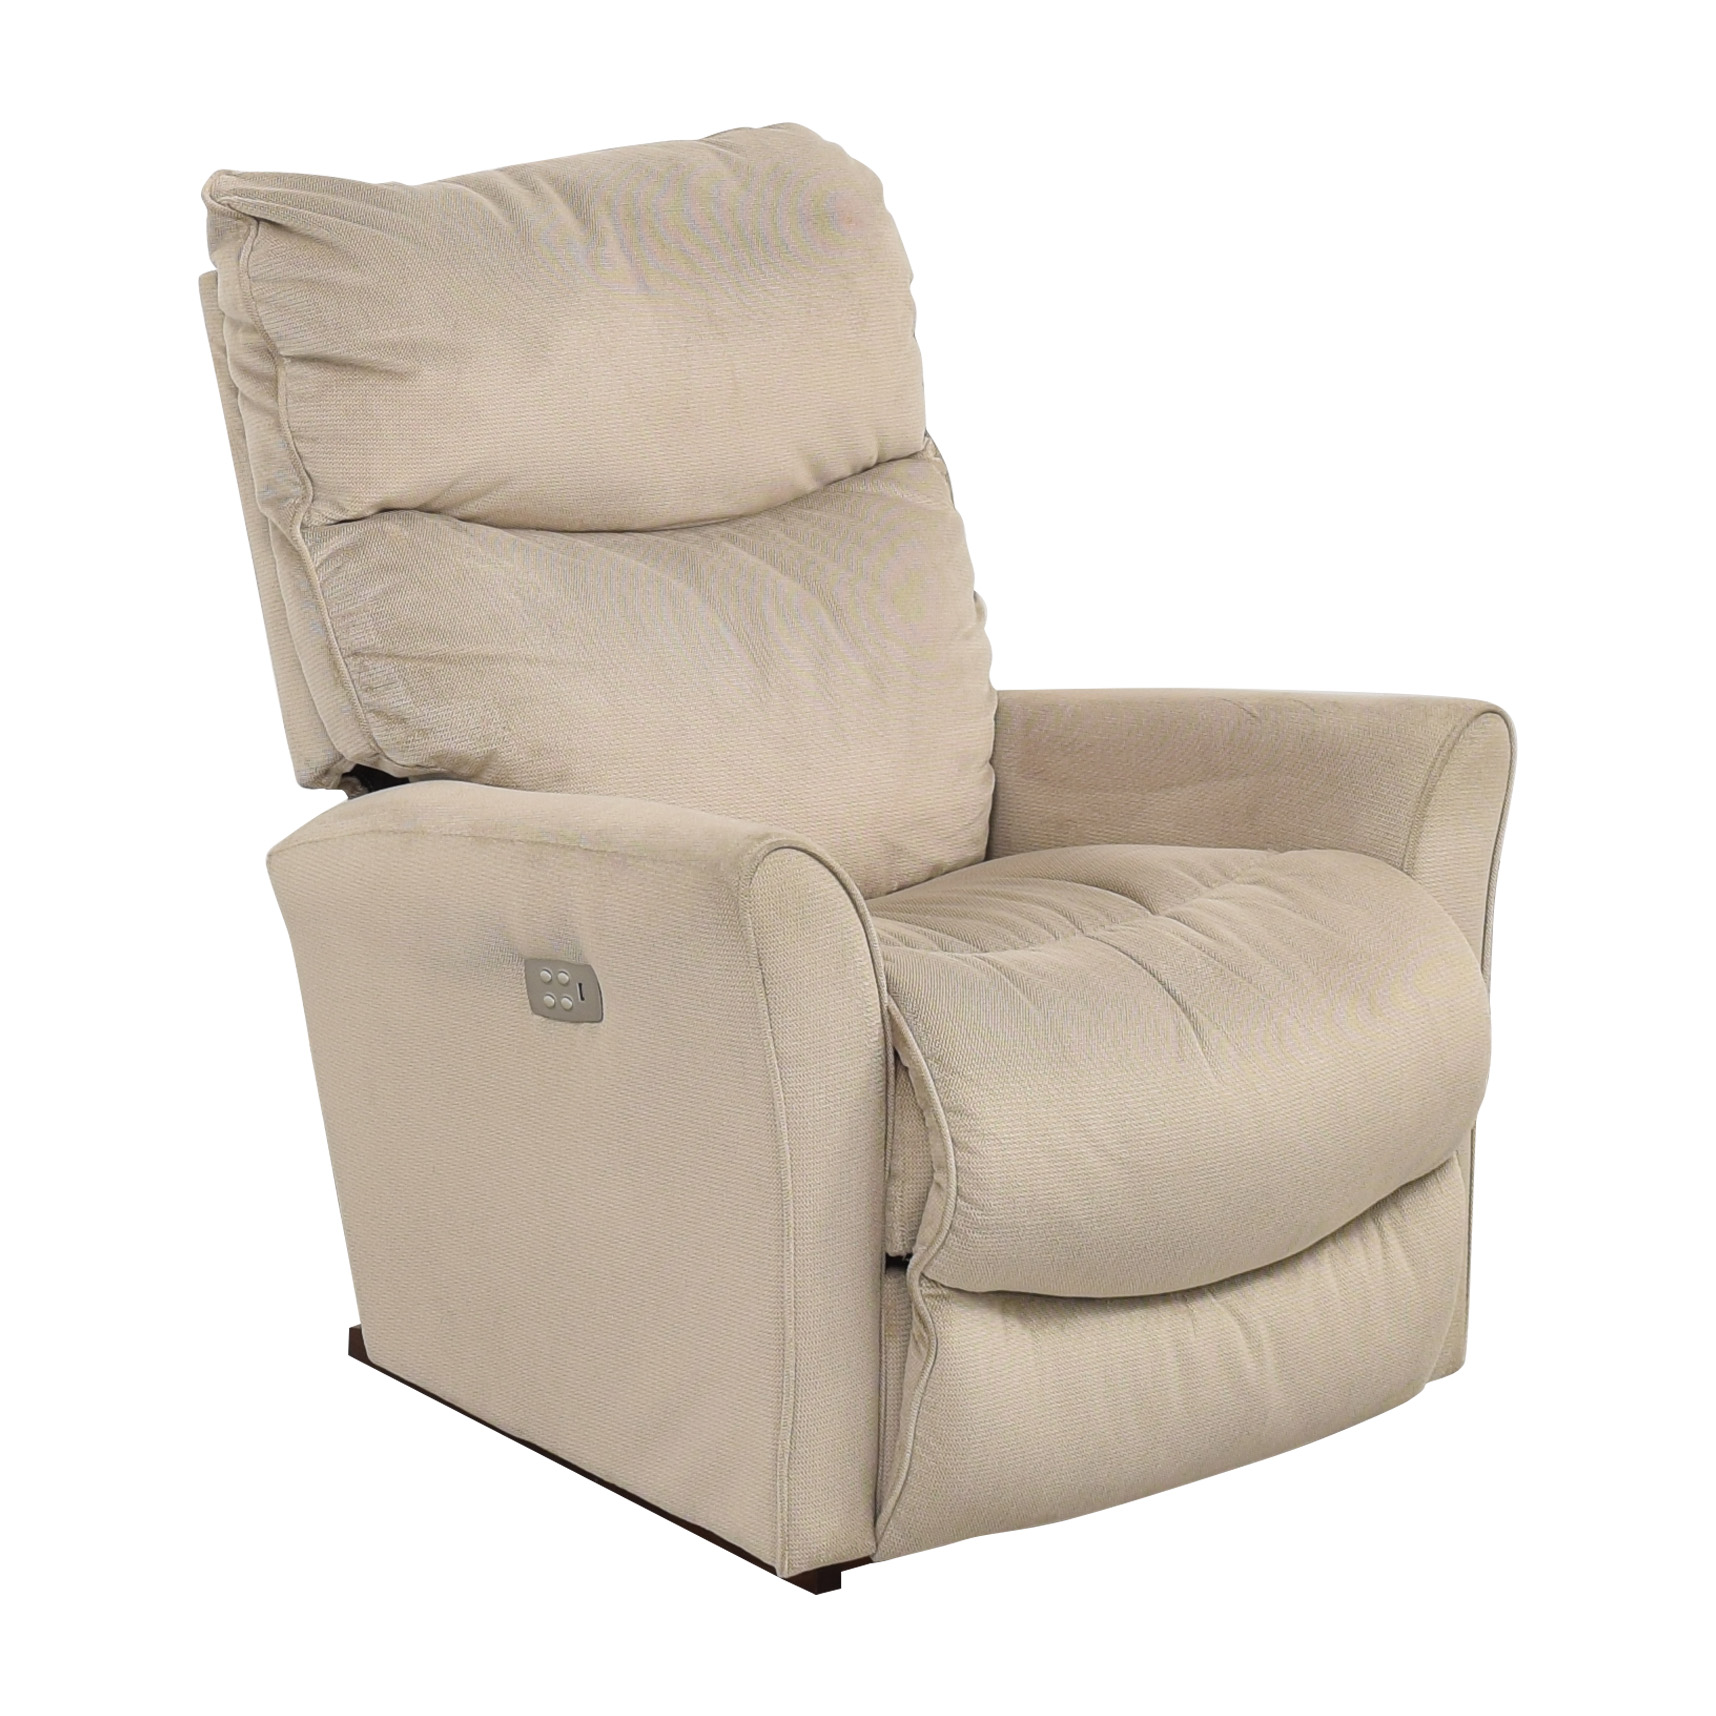 La-Z-Boy La-Z-Boy Rowan Power Rocking Recliner for sale